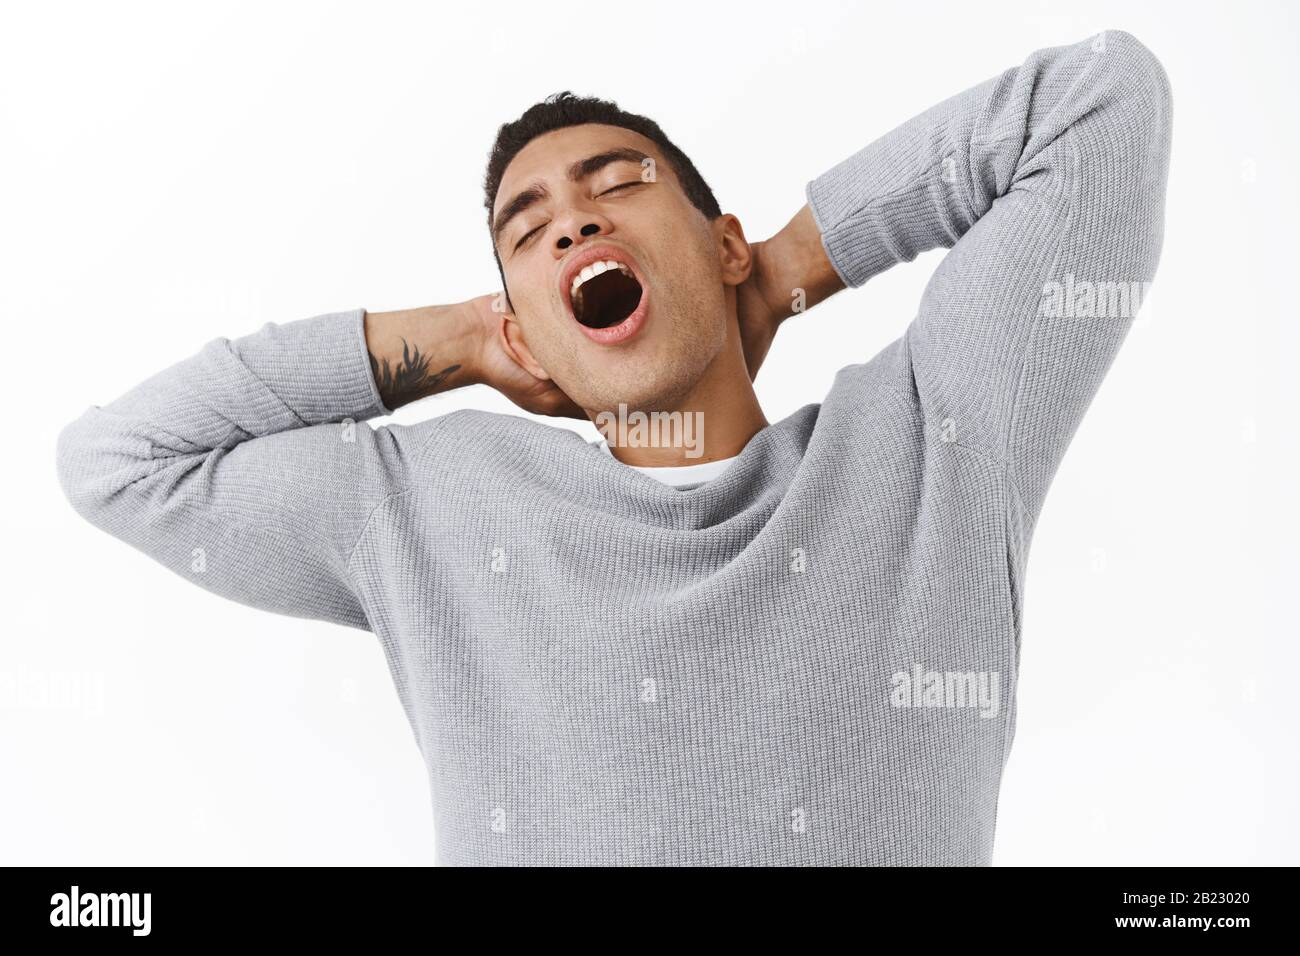 Close-up lazy handsome young hispanic guy with athletic body, stretching and holding hands behind head, yawning with closed eyes tired, feeling sleepy Stock Photo